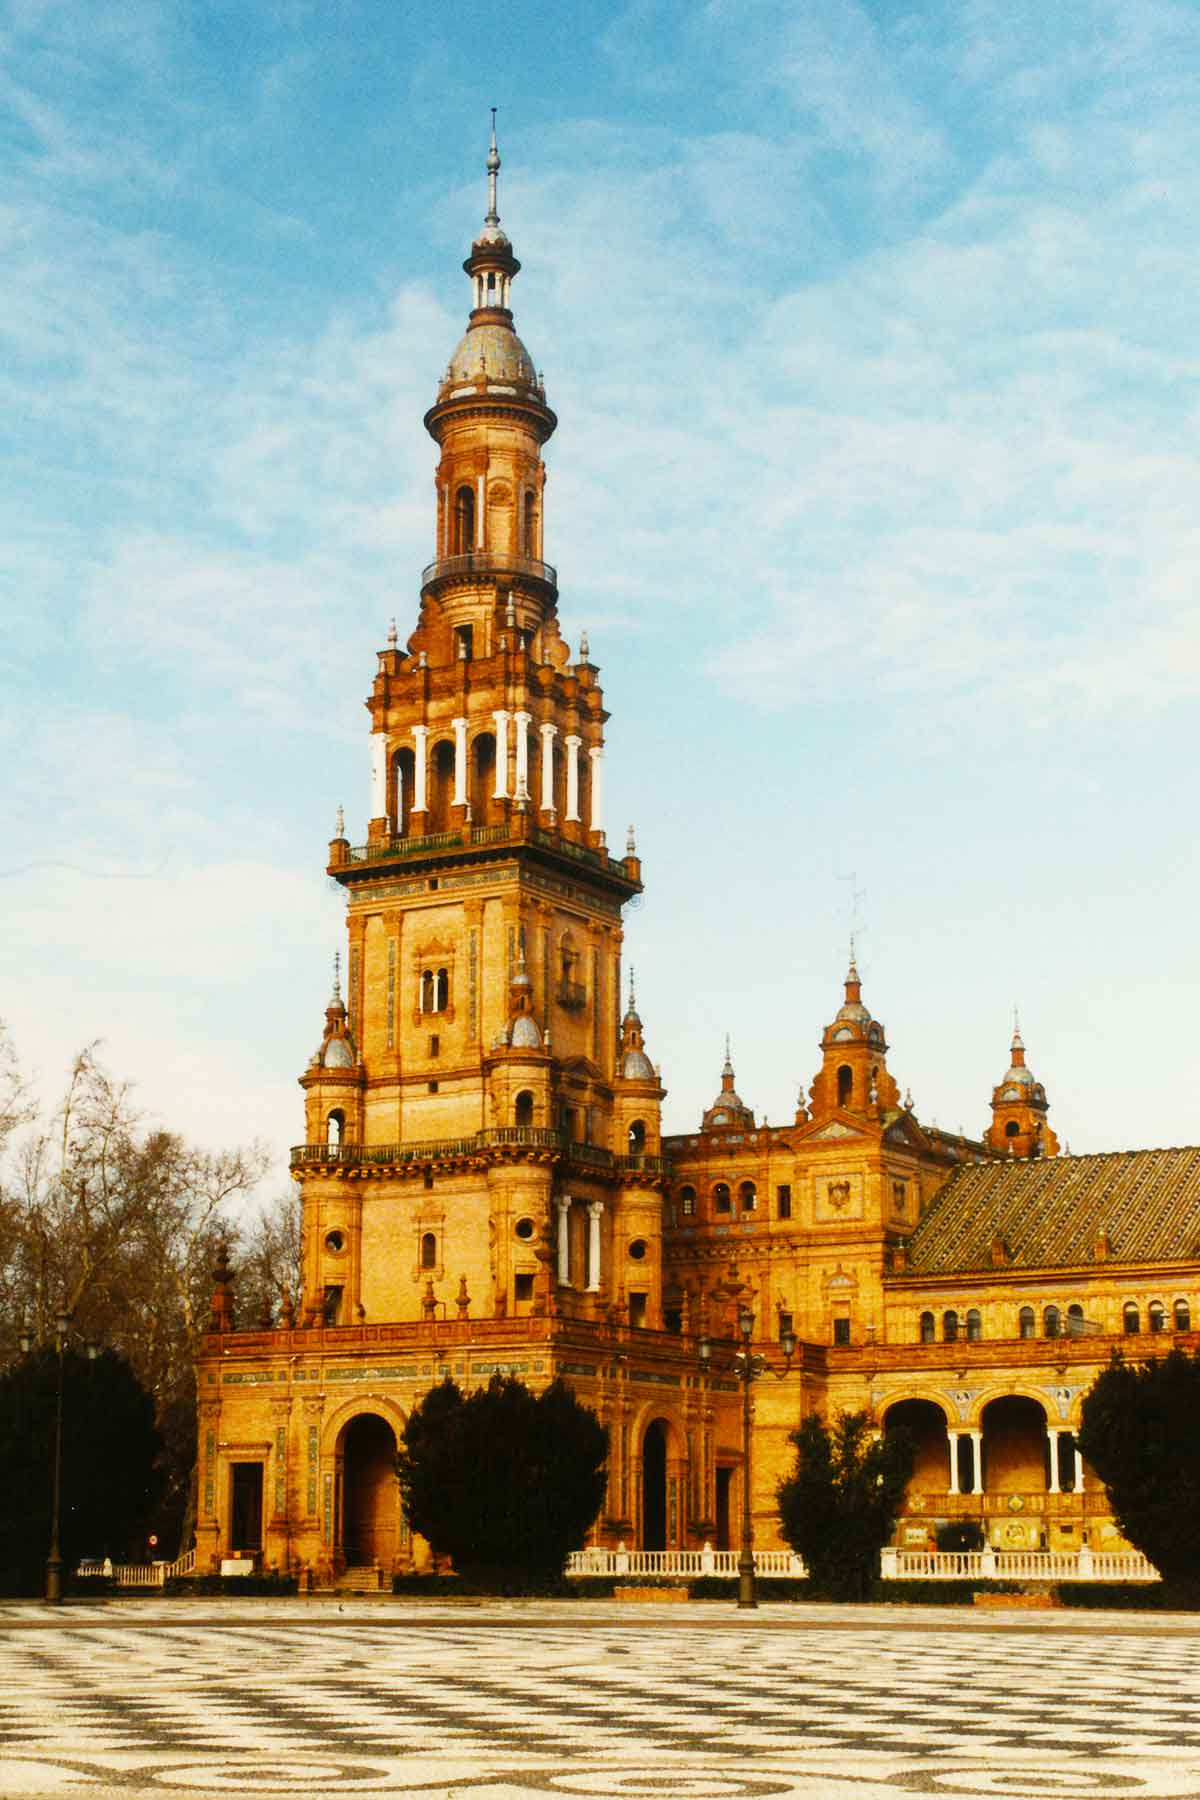 Plaza de Espana | Seville Spain - Steven Andrew Martin - Study Abroad Photo Journal